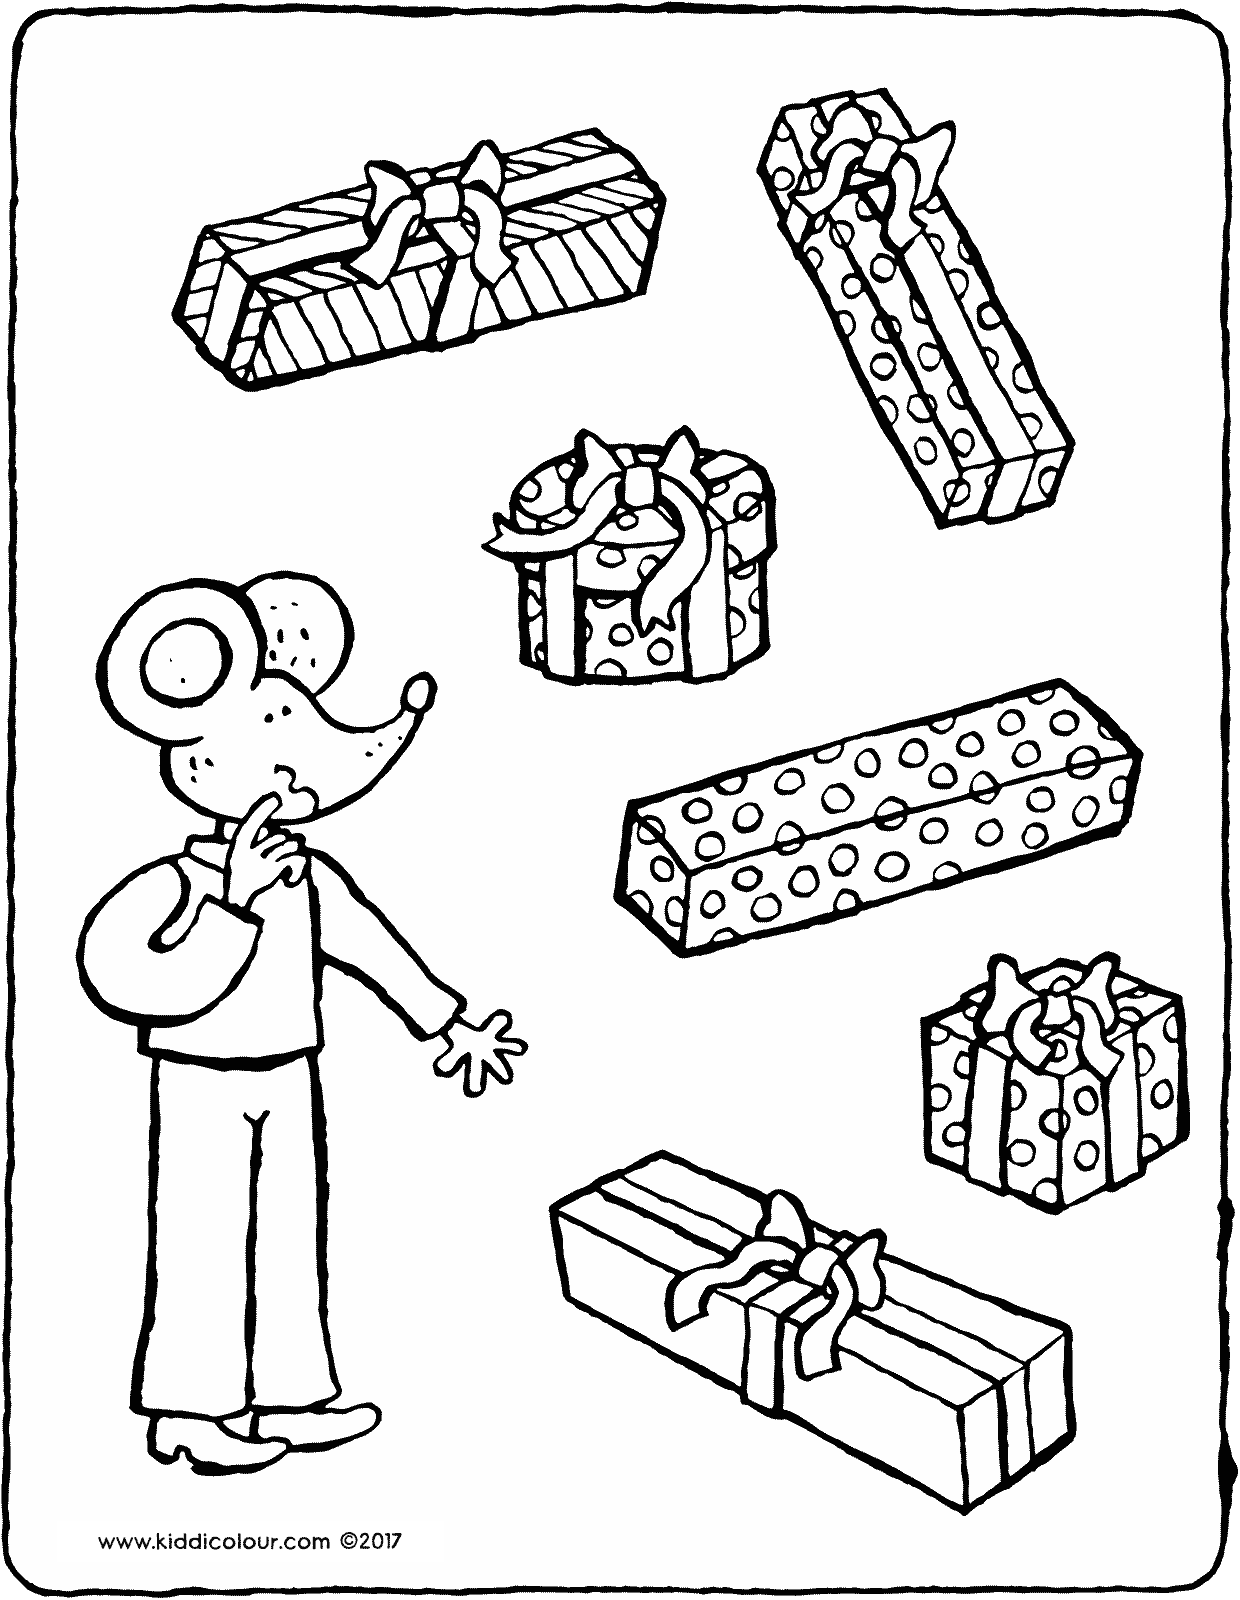 a present for Thomas colouring page drawing picture 01V